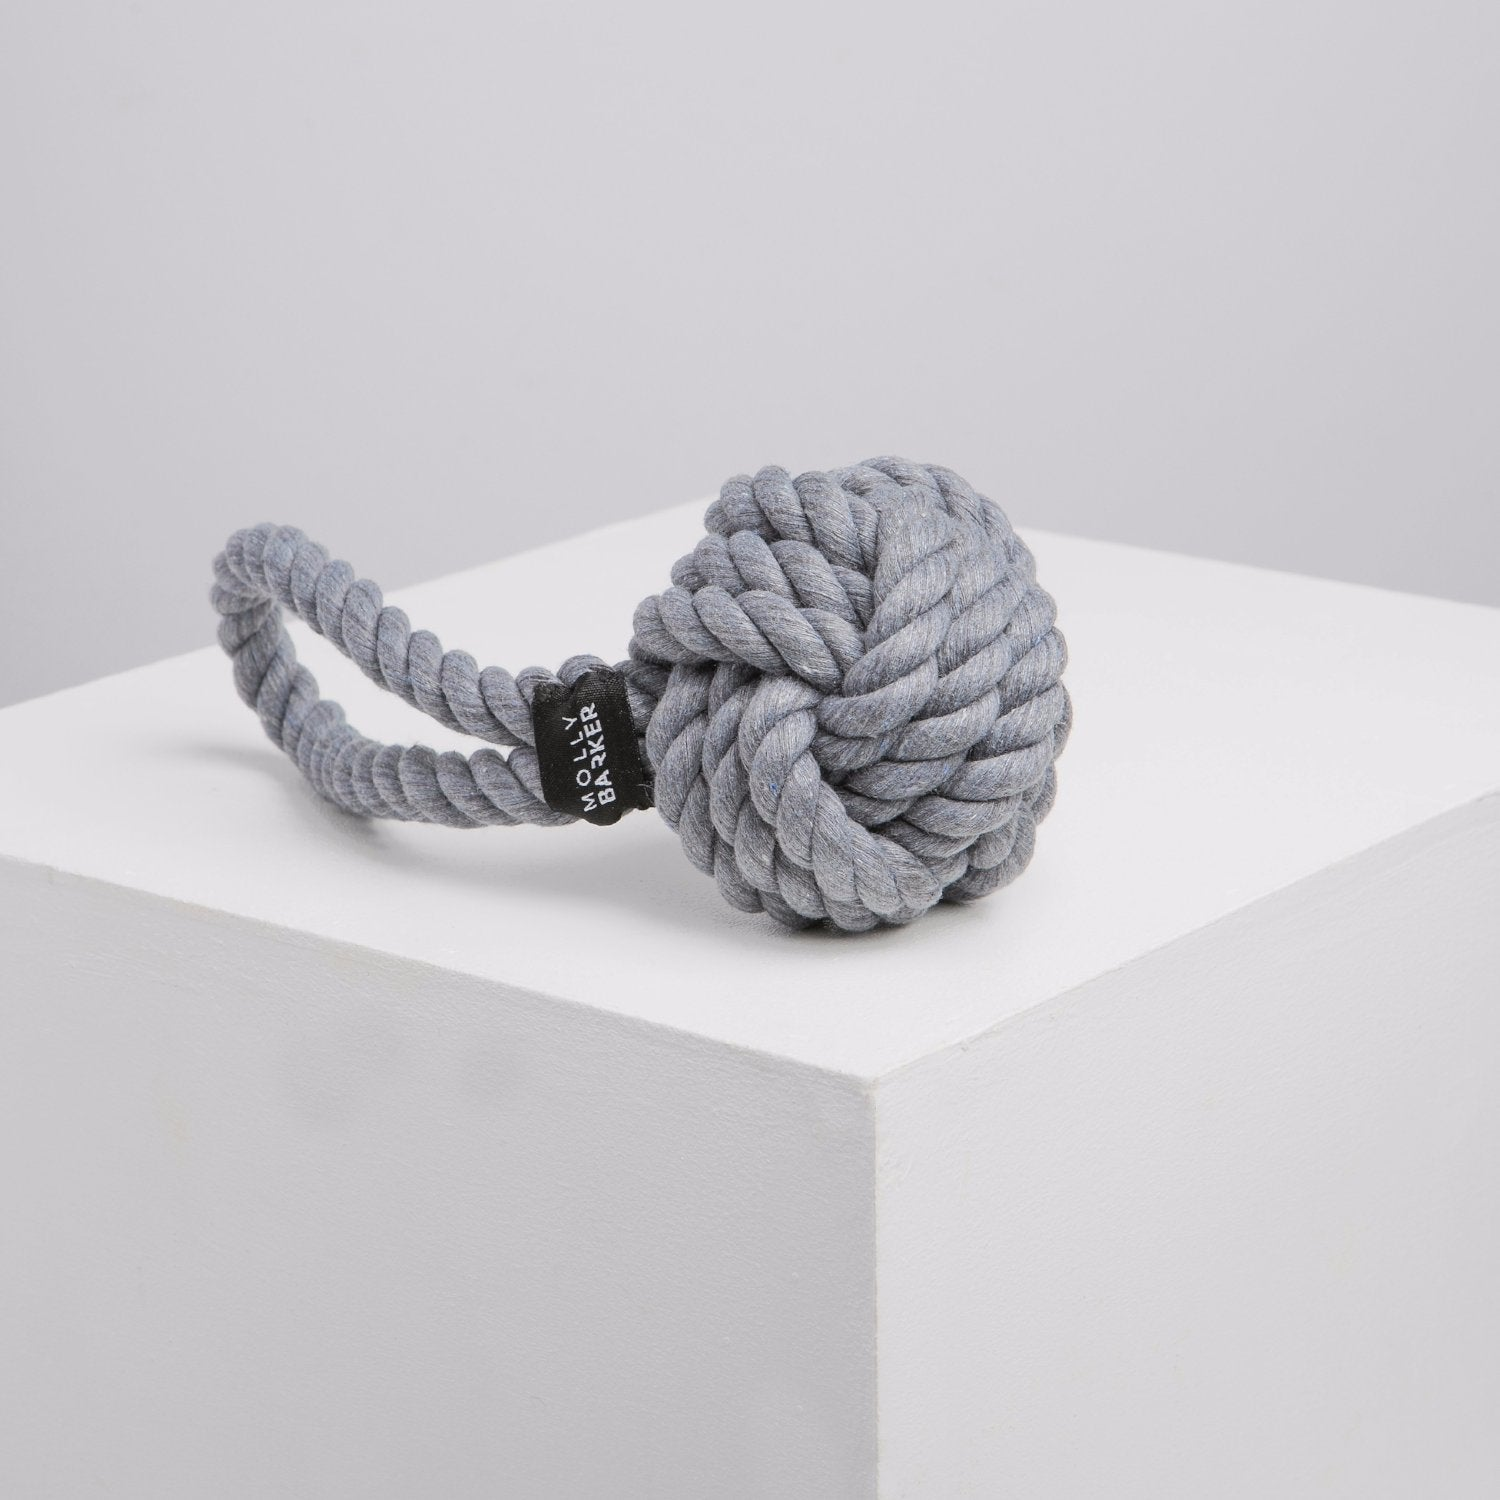 Molly Barker Rope Knot Dog Toy